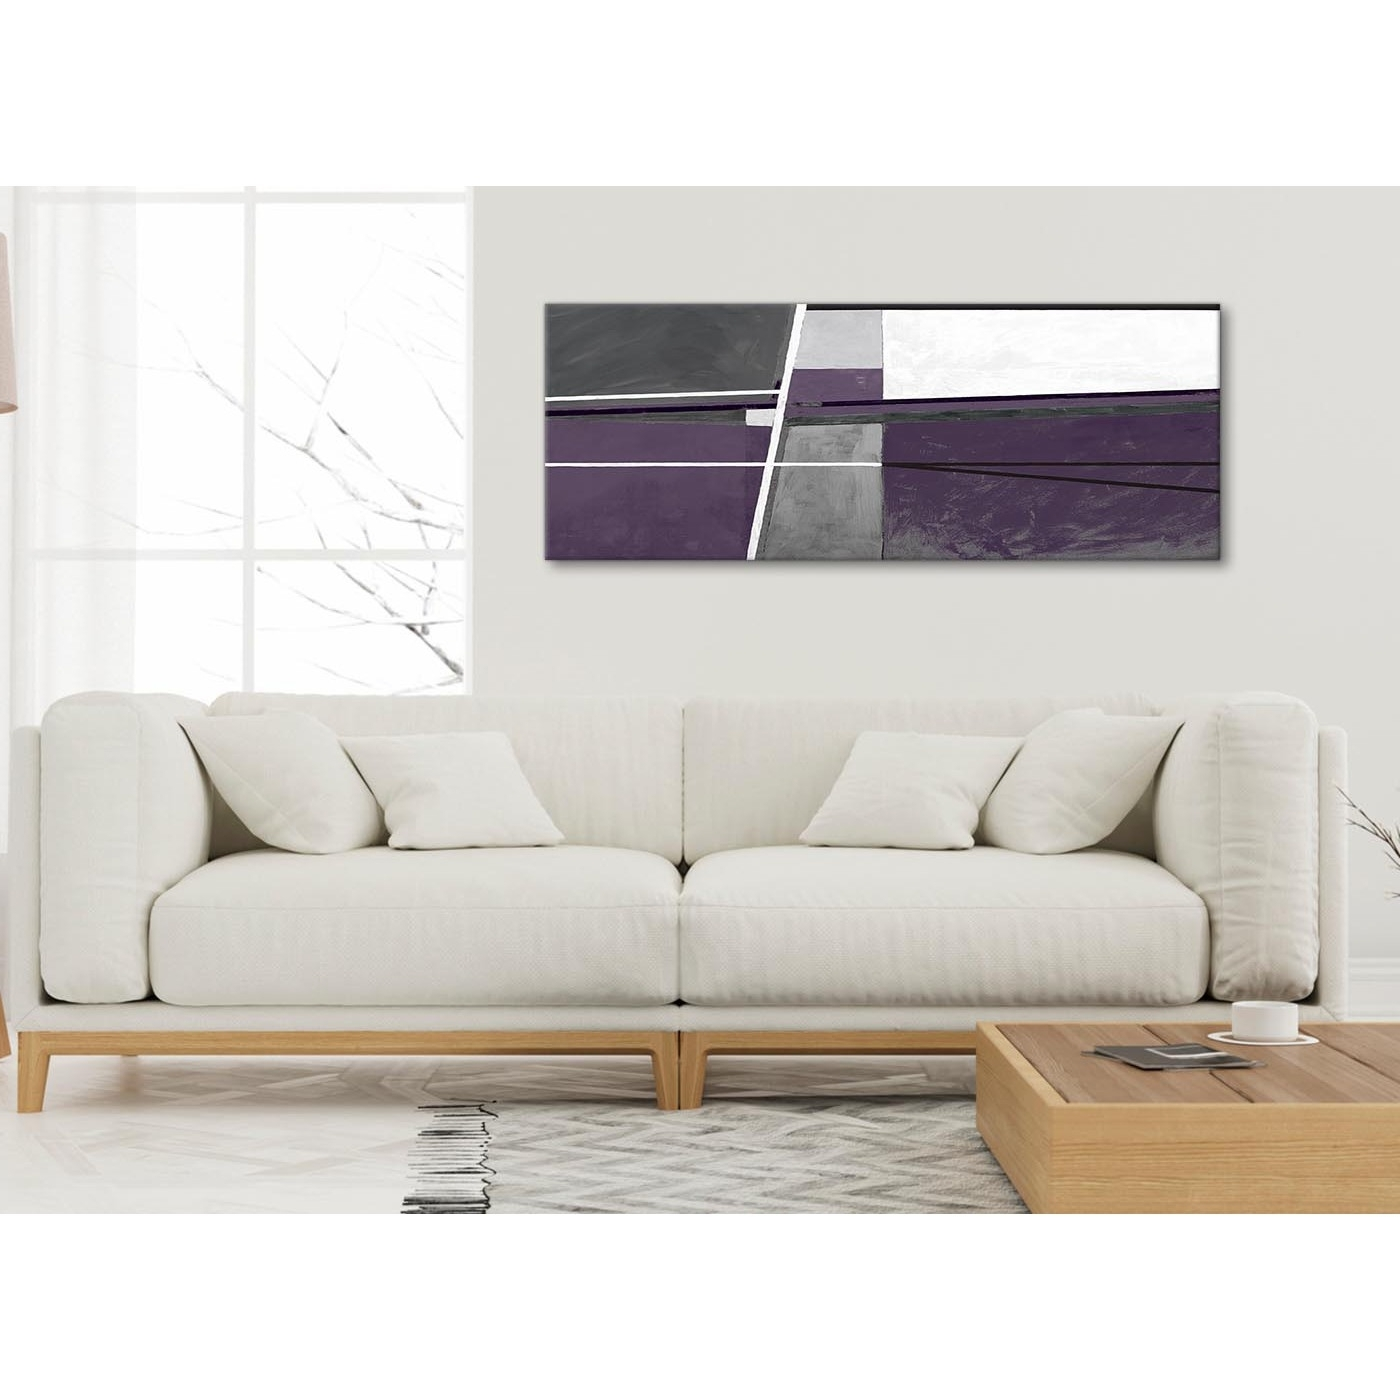 Most Up To Date Aubergine Grey Painting Bedroom Canvas Wall Art Accessories With Regard To Aubergine Wall Art (View 13 of 15)